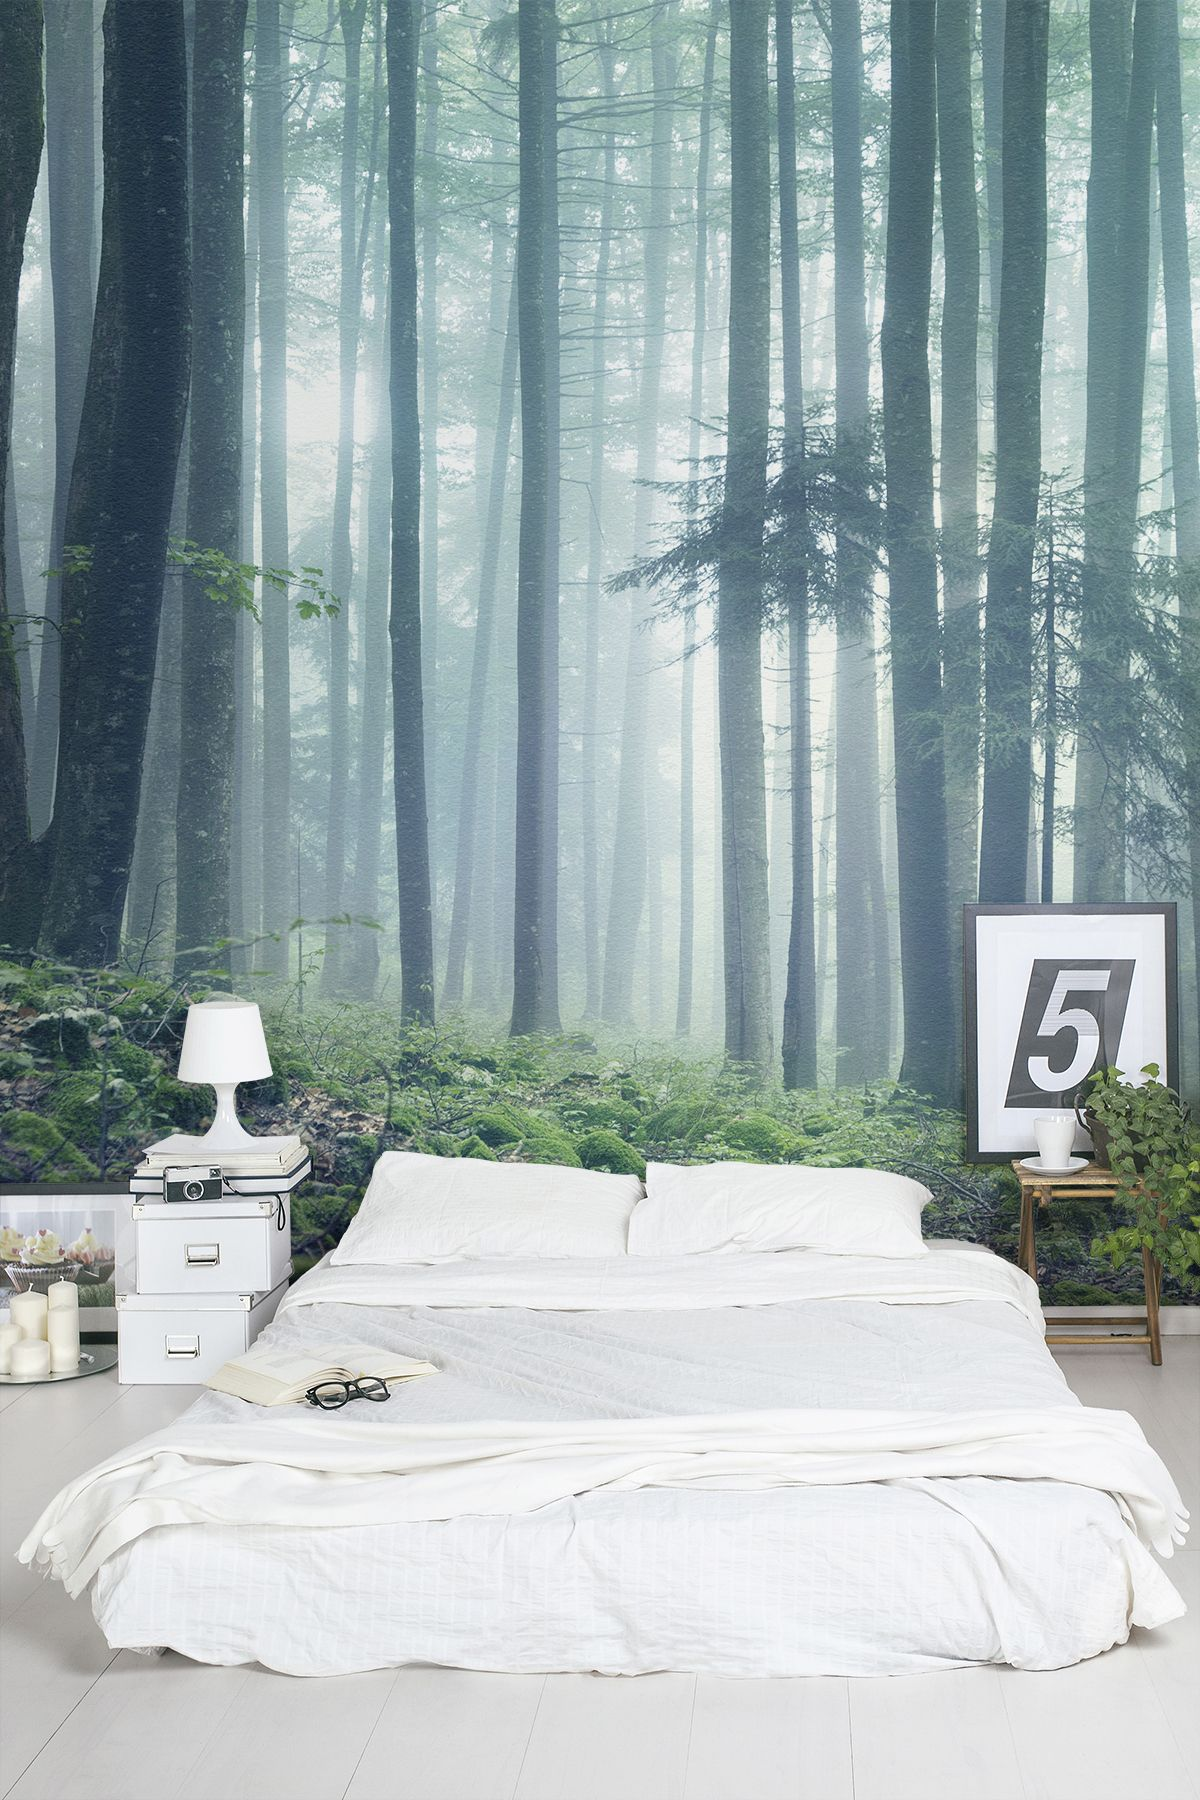 Exceptionnel Get Lost In The Woods With This Forest Wallpaper Mural. The Misty Air Adds  A Sense Of Mystery To Your Interiors, Bringing Dreamlike Feel Thatu0027s  Perfect For ...